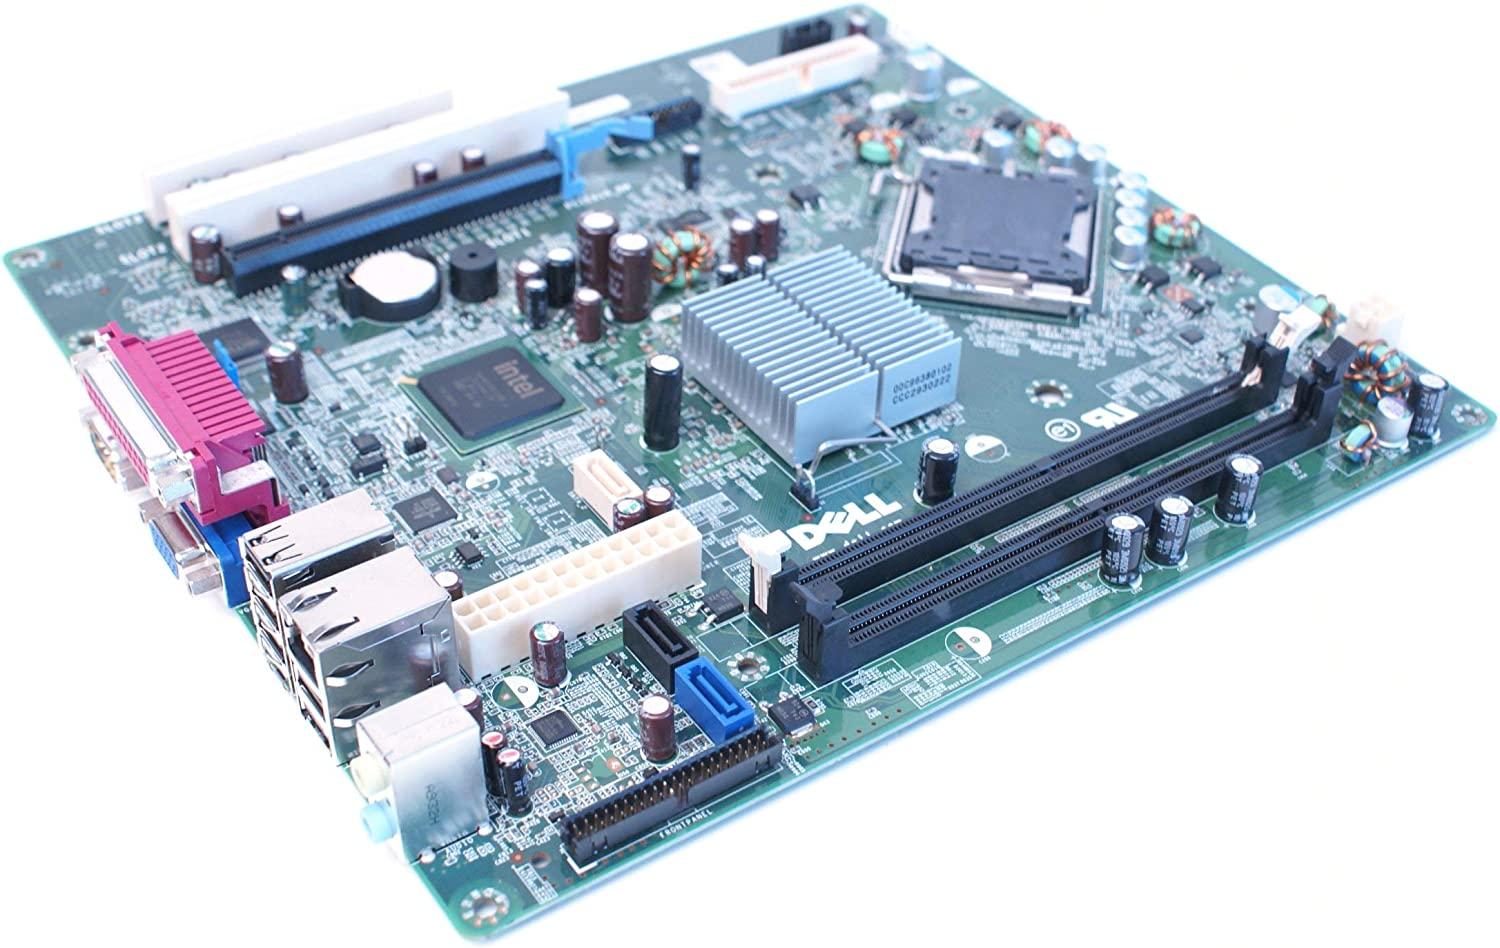 Genuine Dell Motherboard Logic Board For Optiplex 360 Desktop DT Systems Intel G31 Express Chipset DDR2 Memory Socket 775 Compatible Part Numbers: T656F (Renewed)